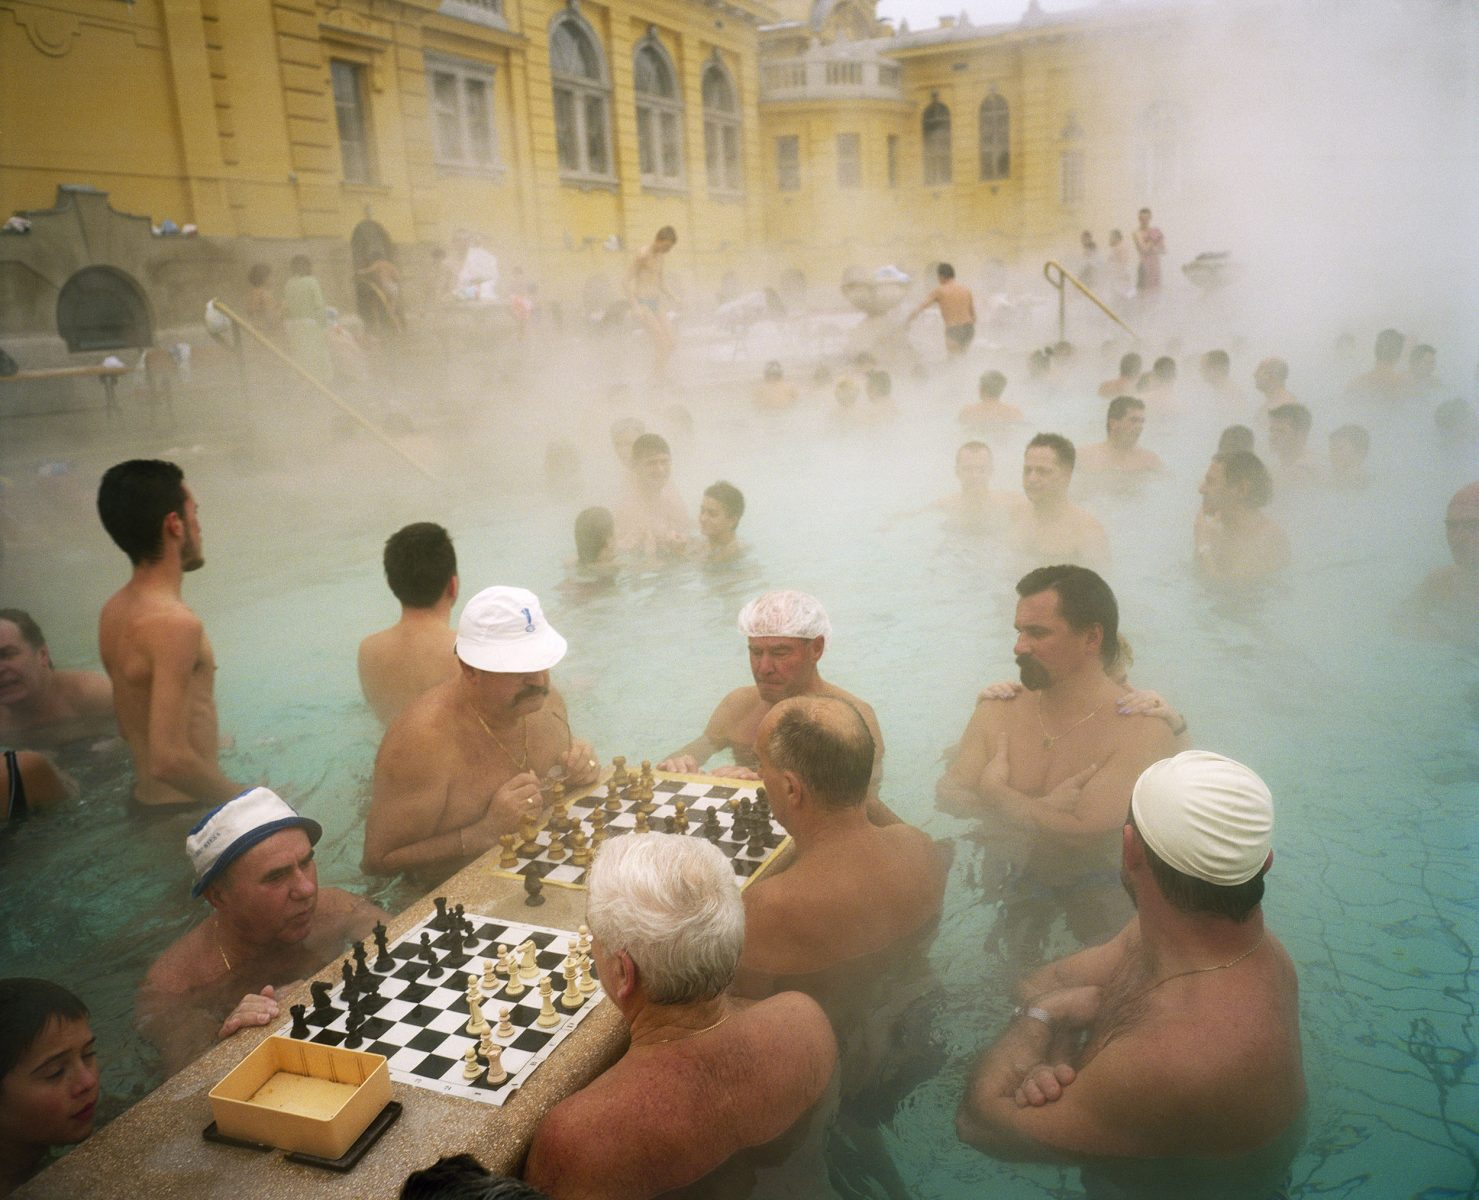 Color photo by Martin Parr men bathing and playing chess at Szechenyi Thermal Baths, Budapest, Hungary, 1997